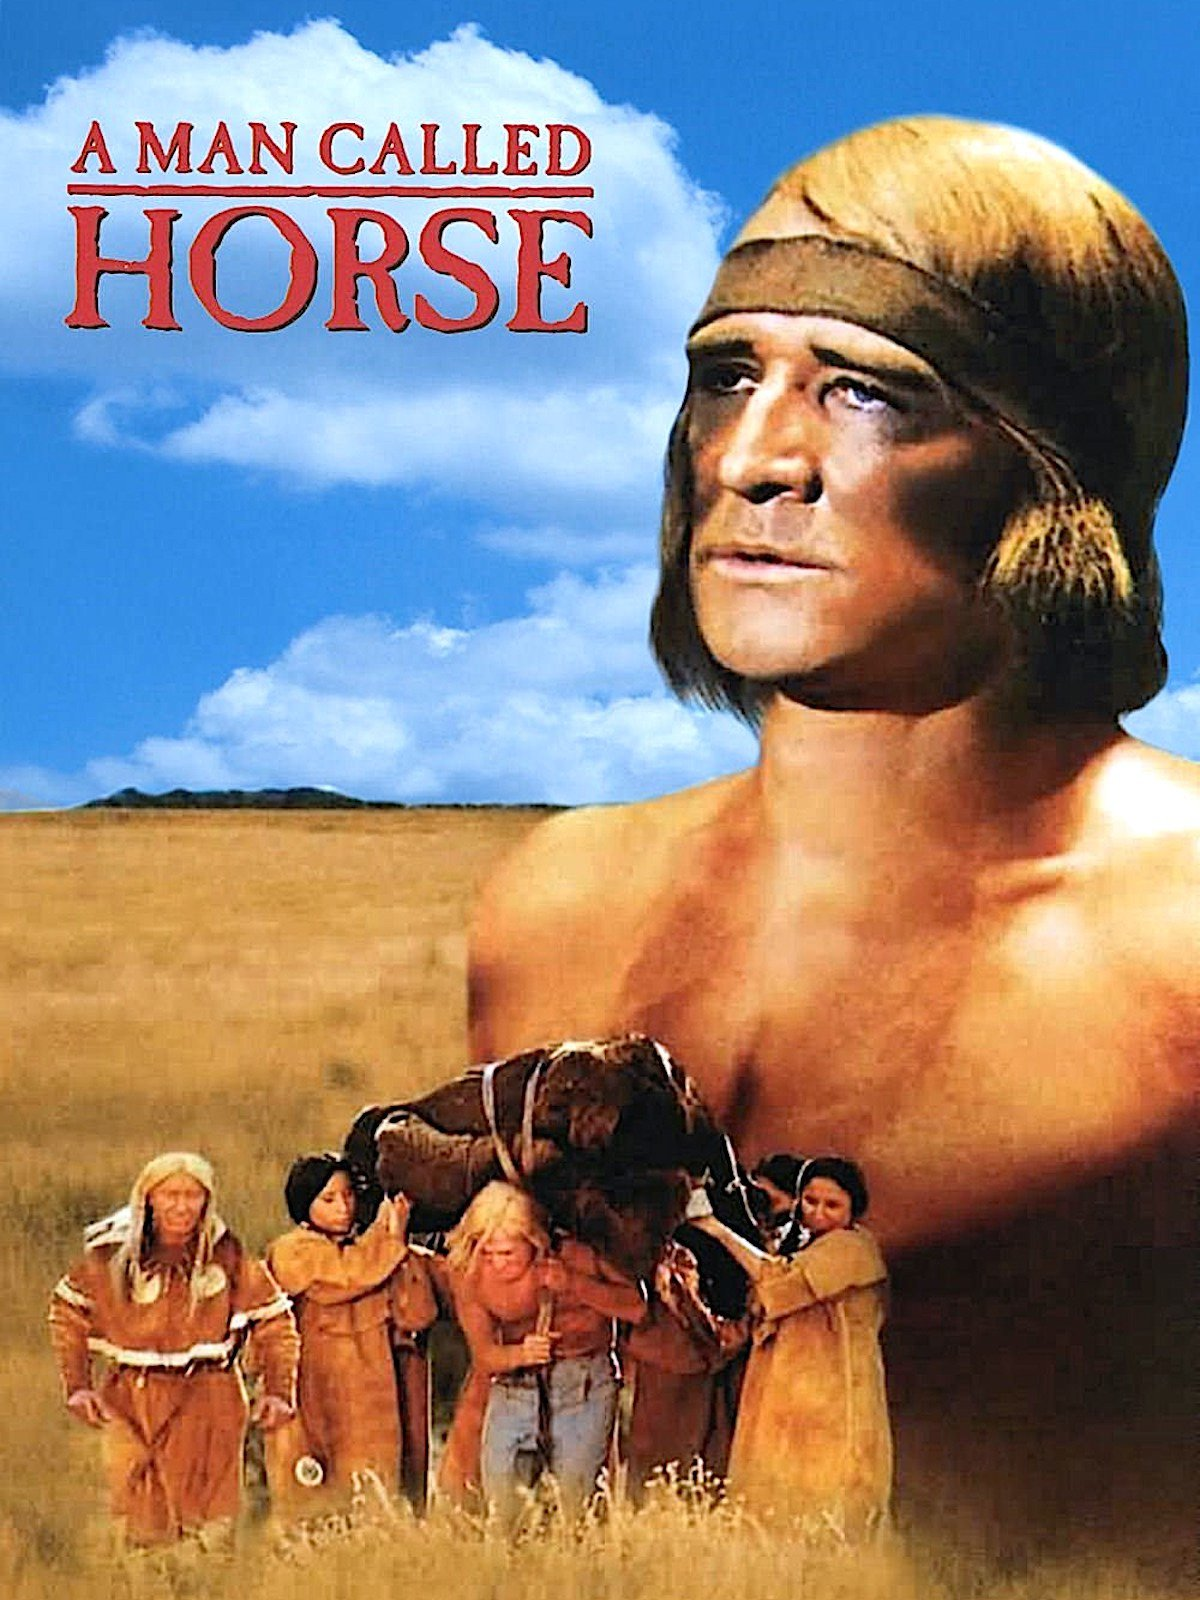 Watch A Man Called Horse Prime Video A Man Called Horse